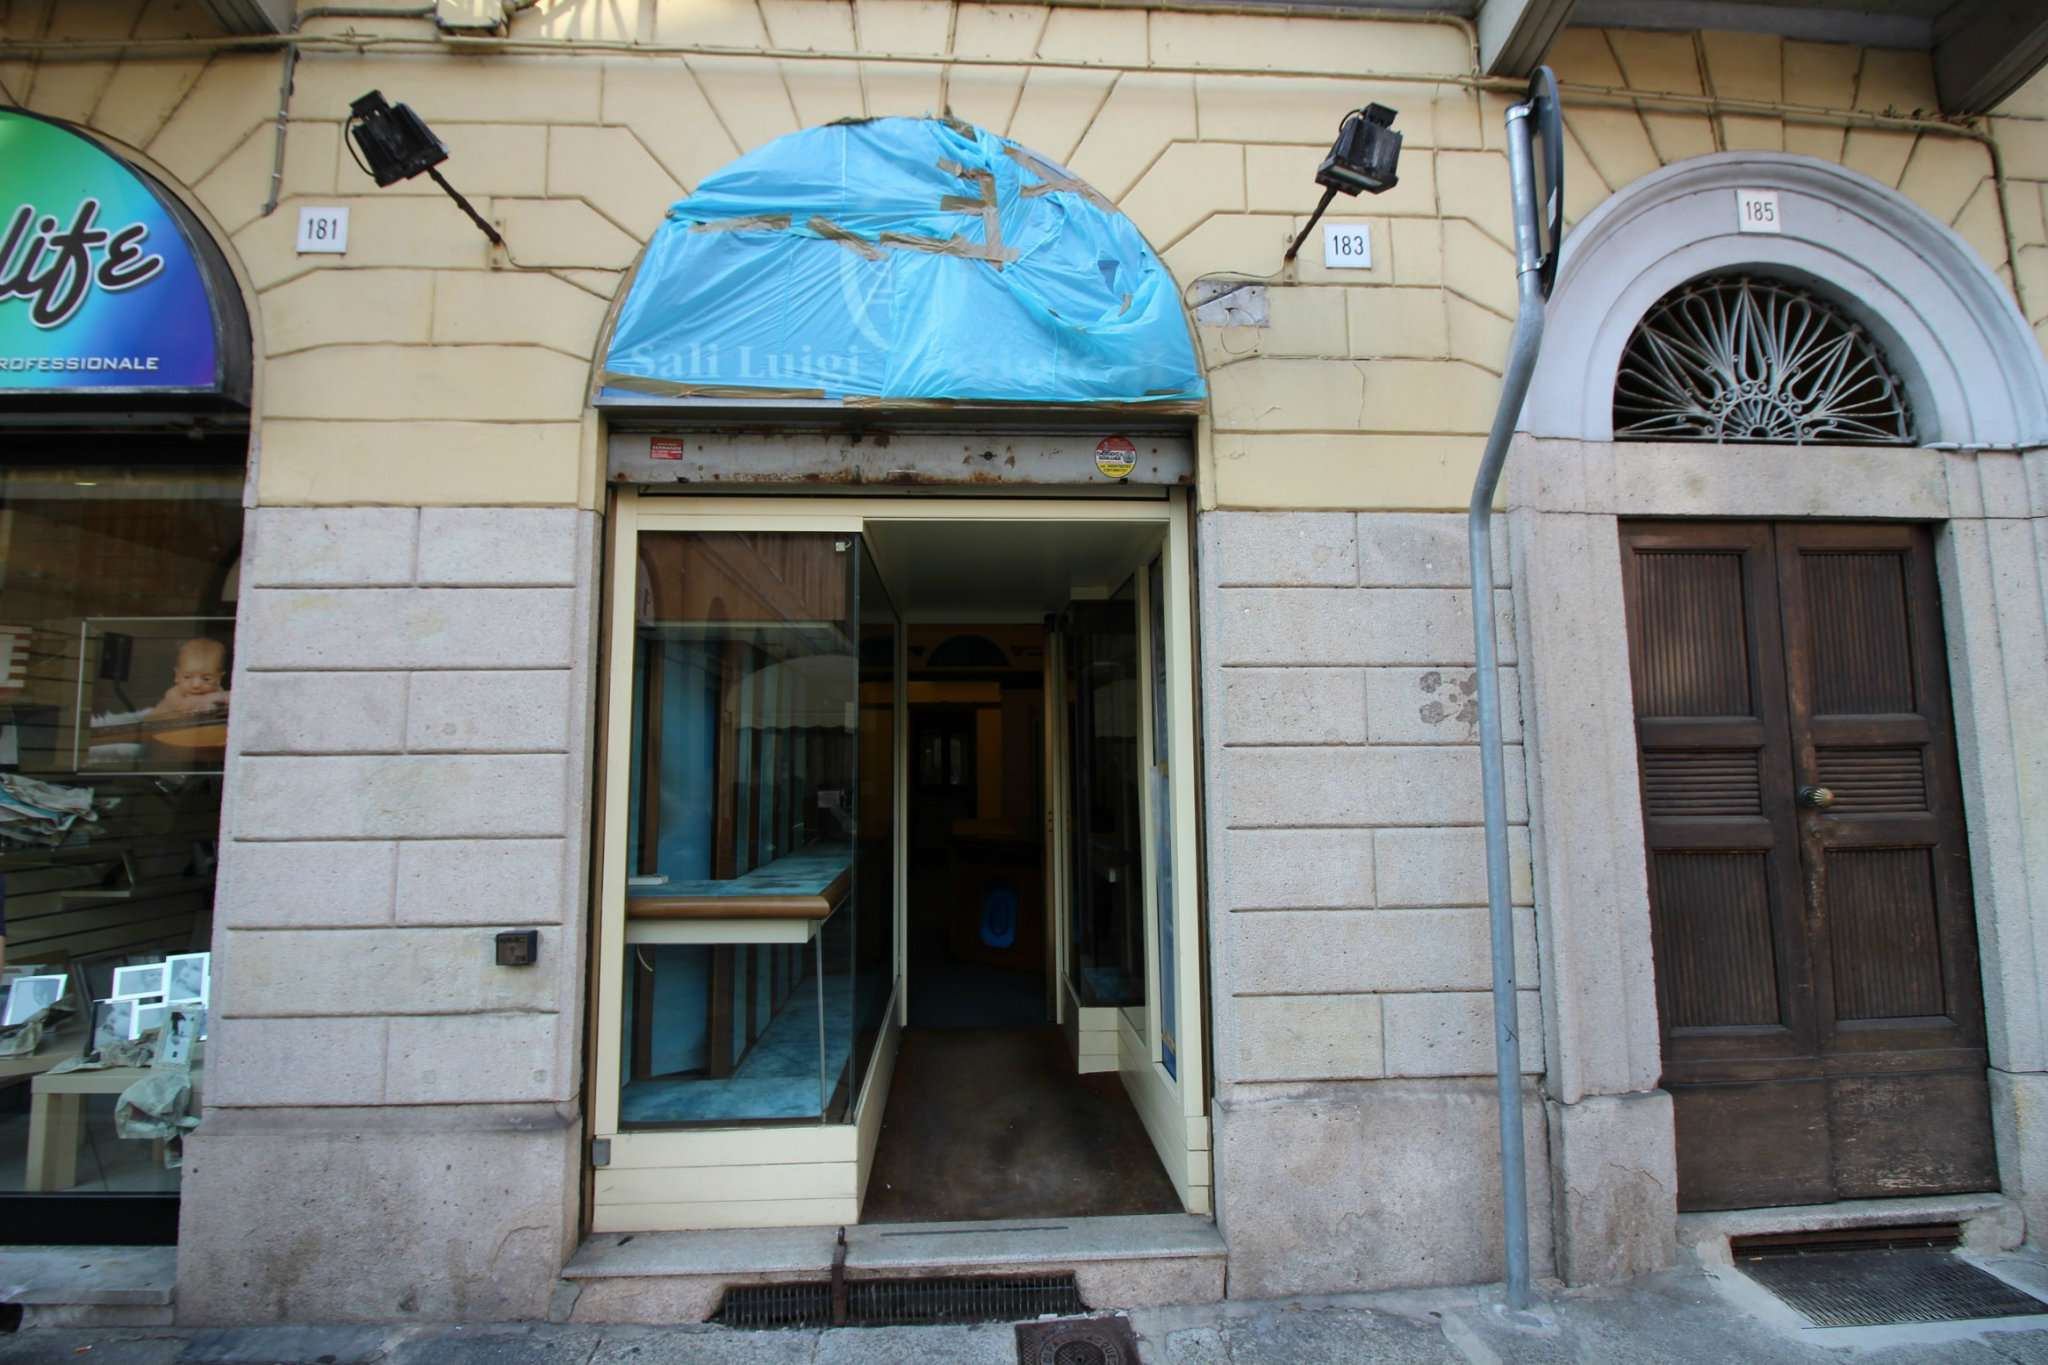 Immobile Commerciale in affitto a Vercelli-http://media.getrix.it/1/6846/2577618586_hd.jpg